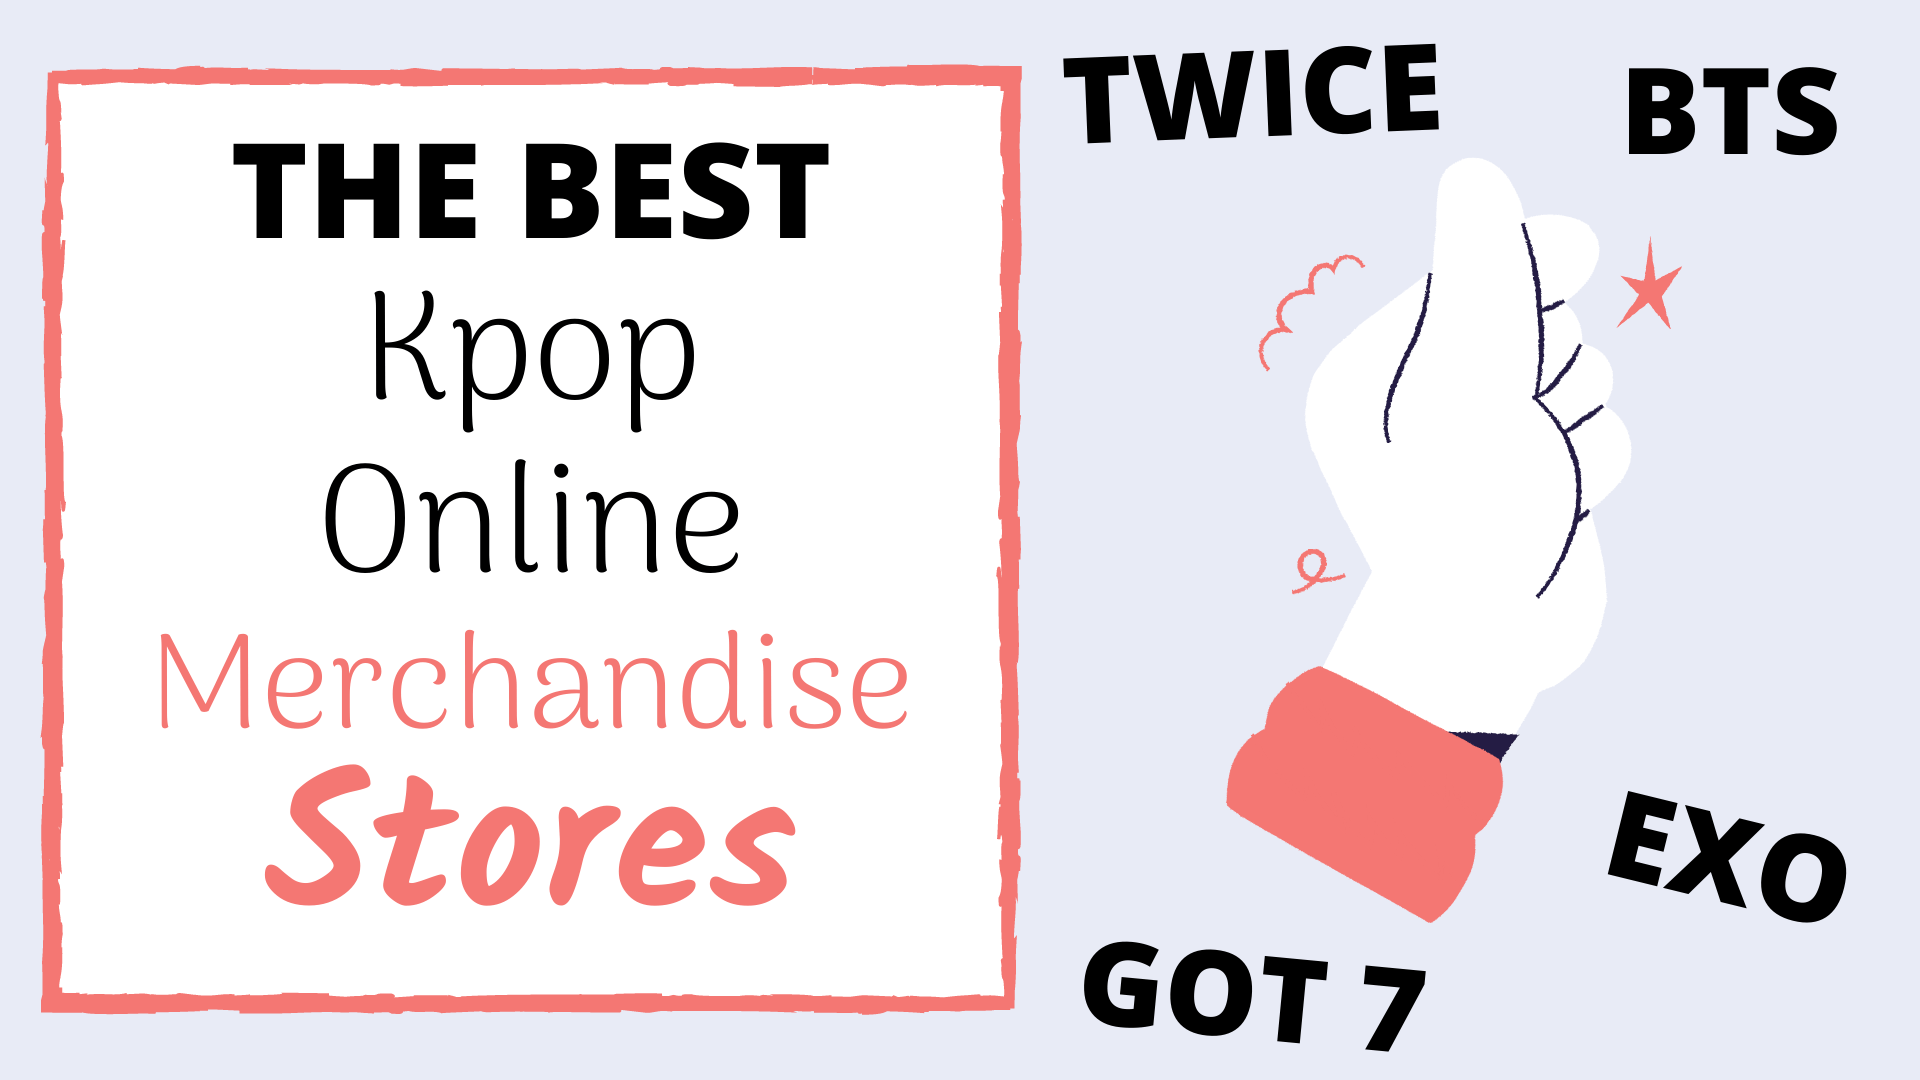 The Best Kpop Online Store Where To Buy Kpop Merchandise Online